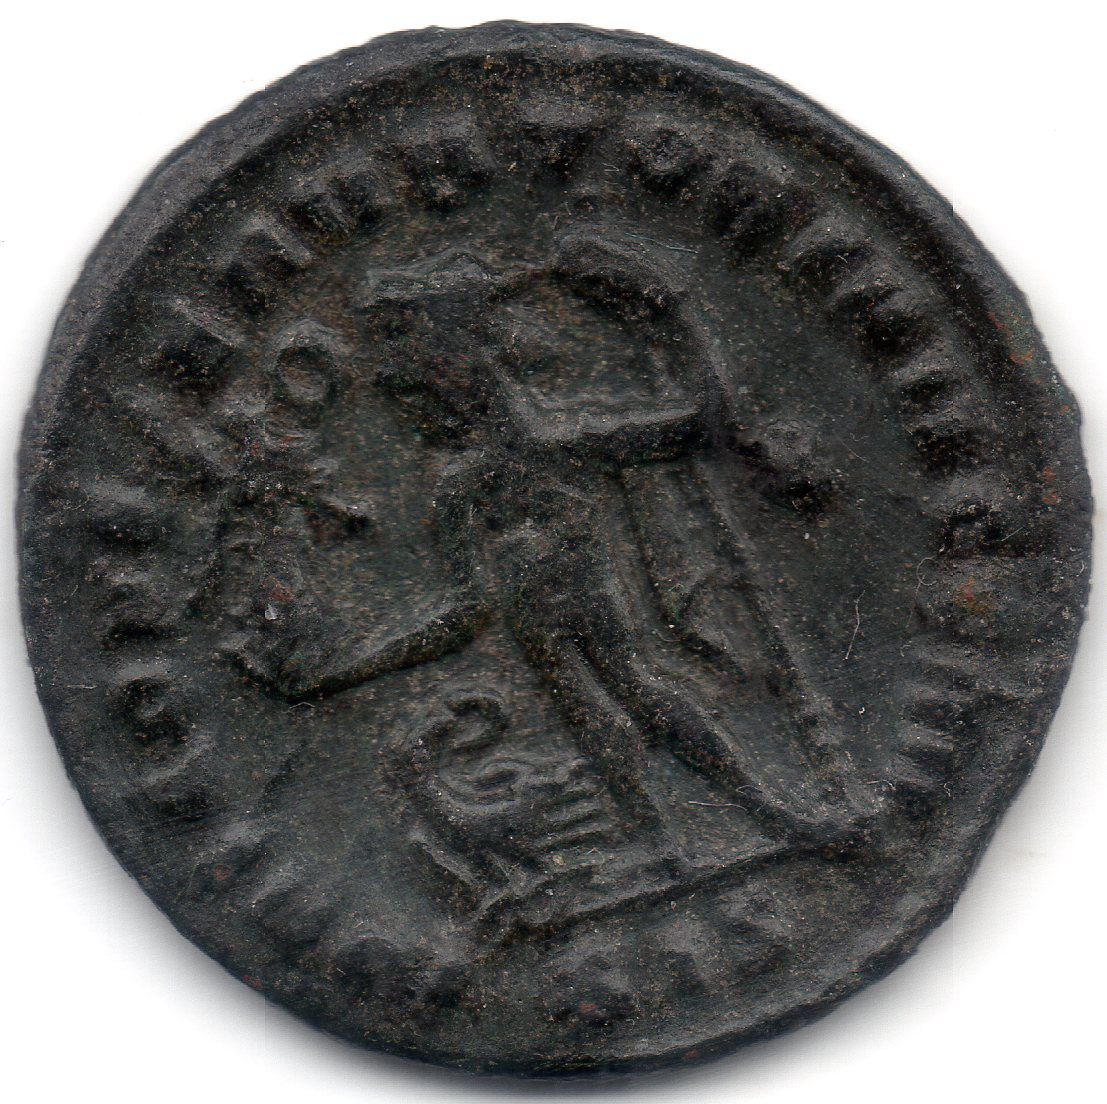 LICINIUS Ier follis 313 apJC